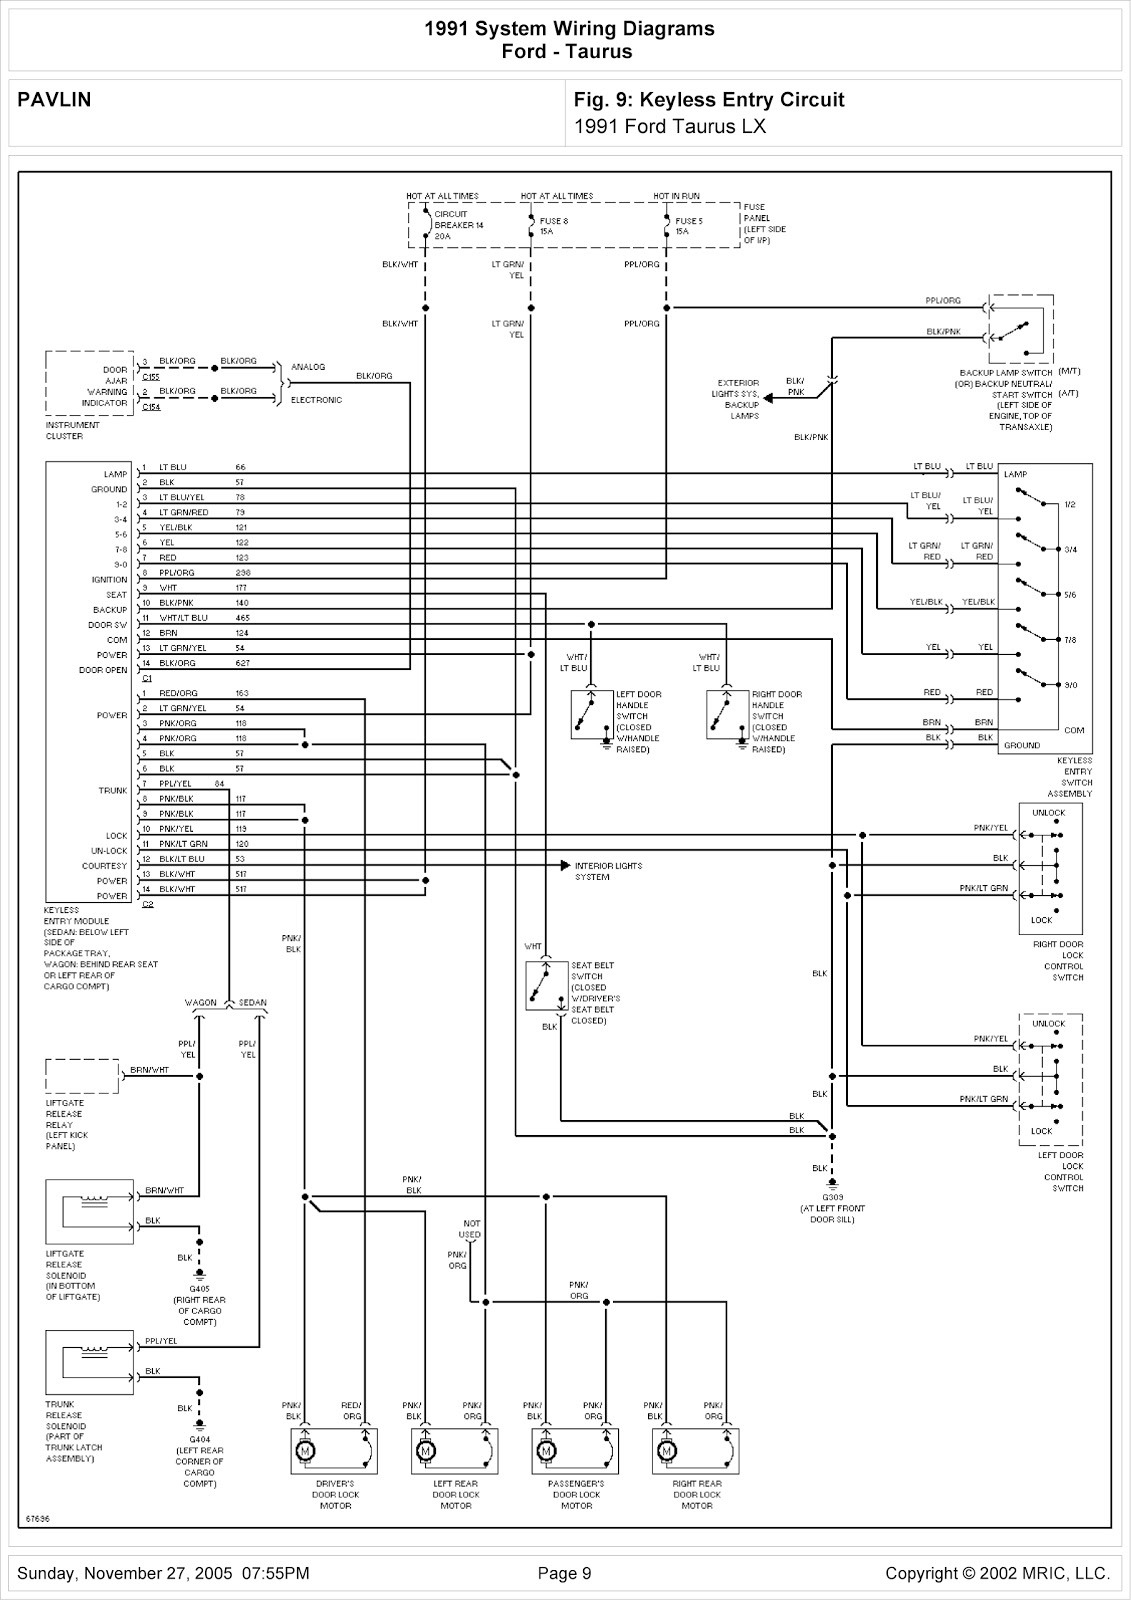 1999 Ford Taurus Wiring Diagram Diagram Base Website Wiring Diagram -  VENNDIAGRAMMEME.AISC-NET.ITDiagram Base Website Full Edition - aisc